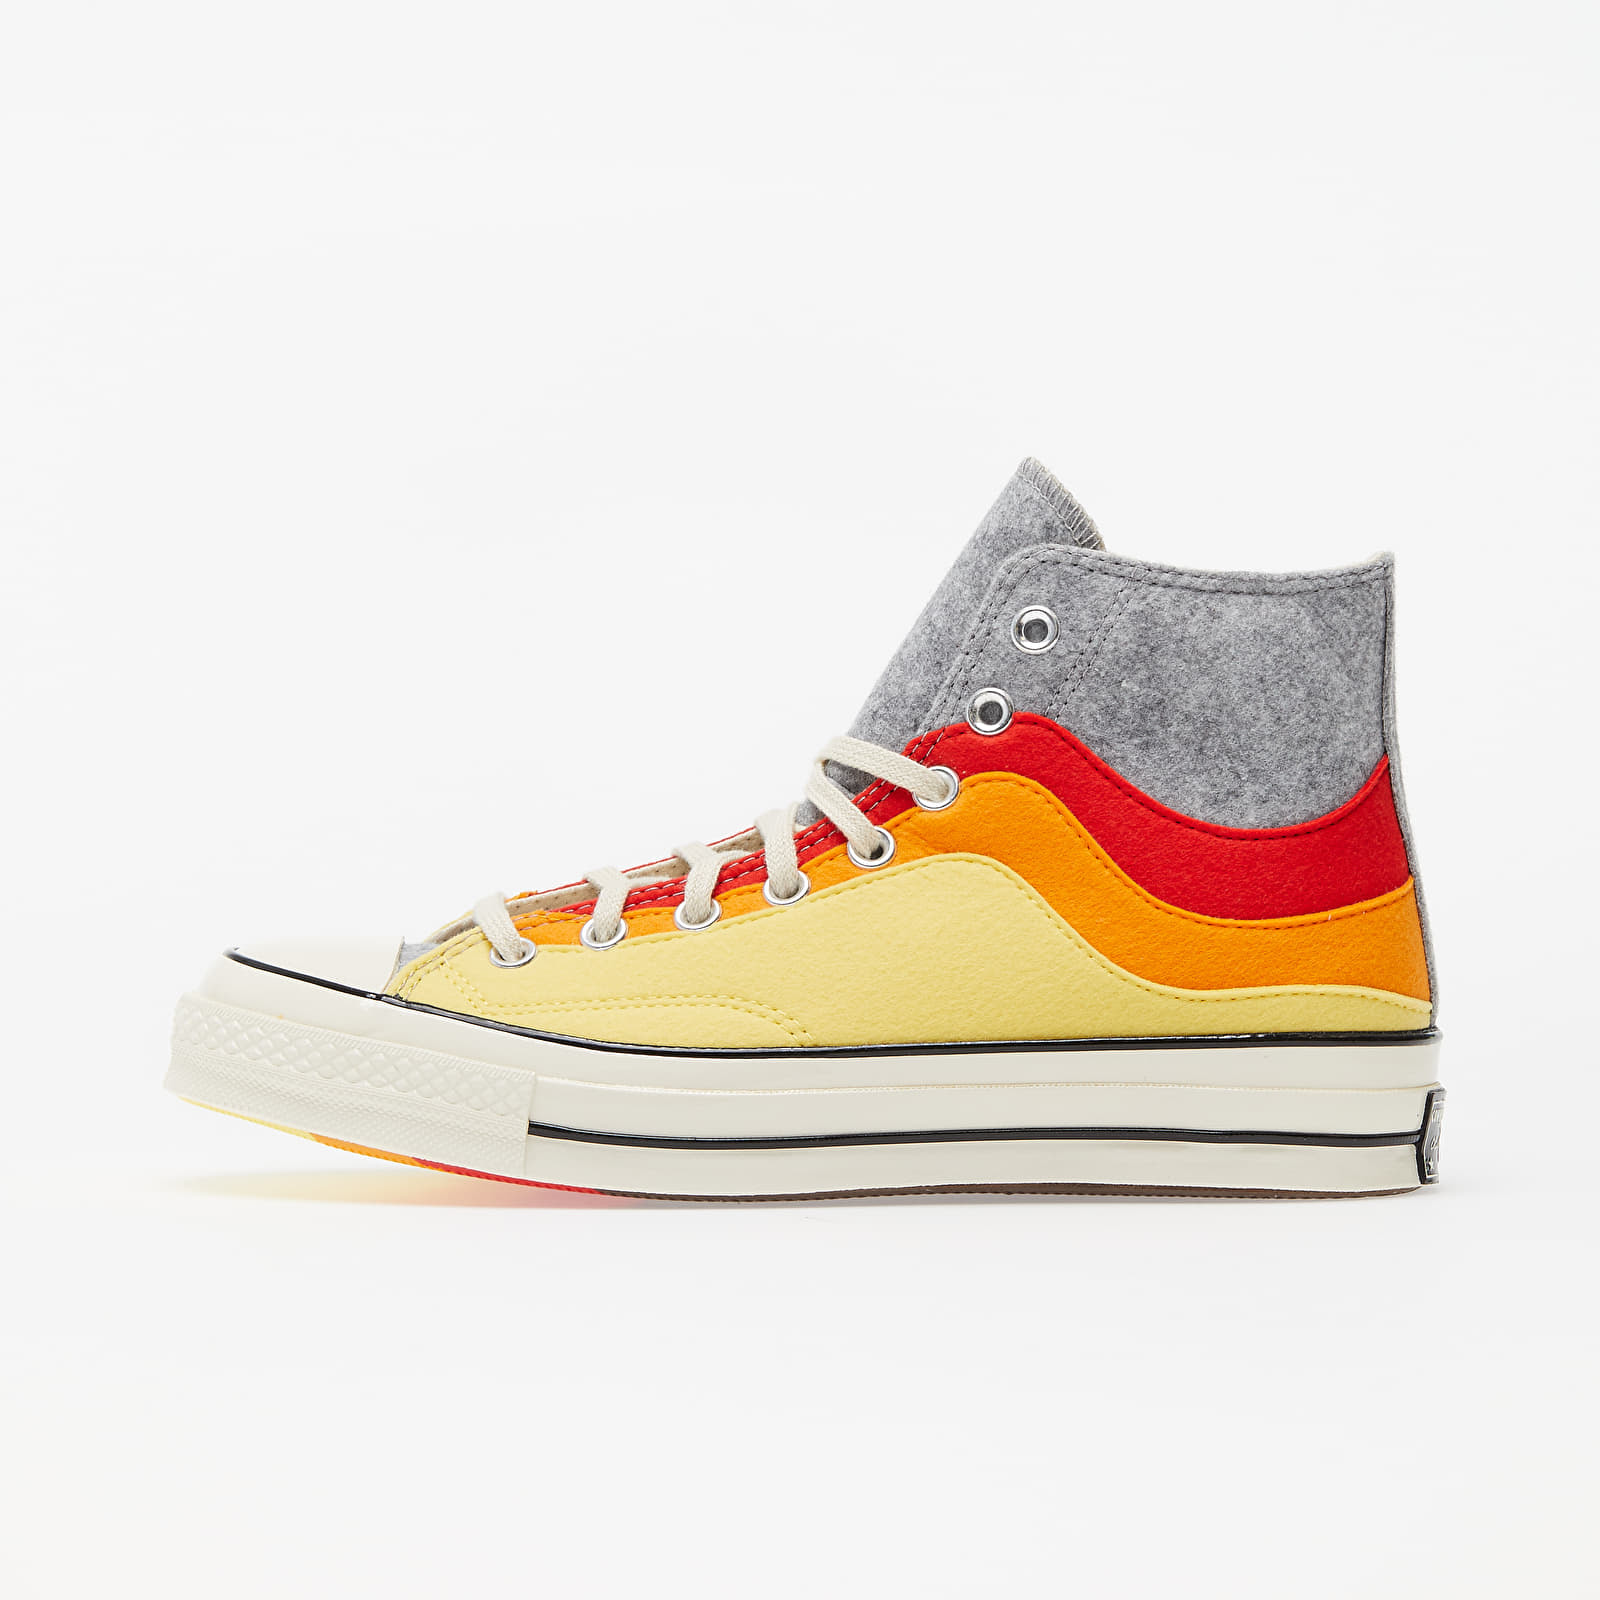 Men's shoes Converse Chuck 70 Storm Front/ Yellow Cream/ Egret